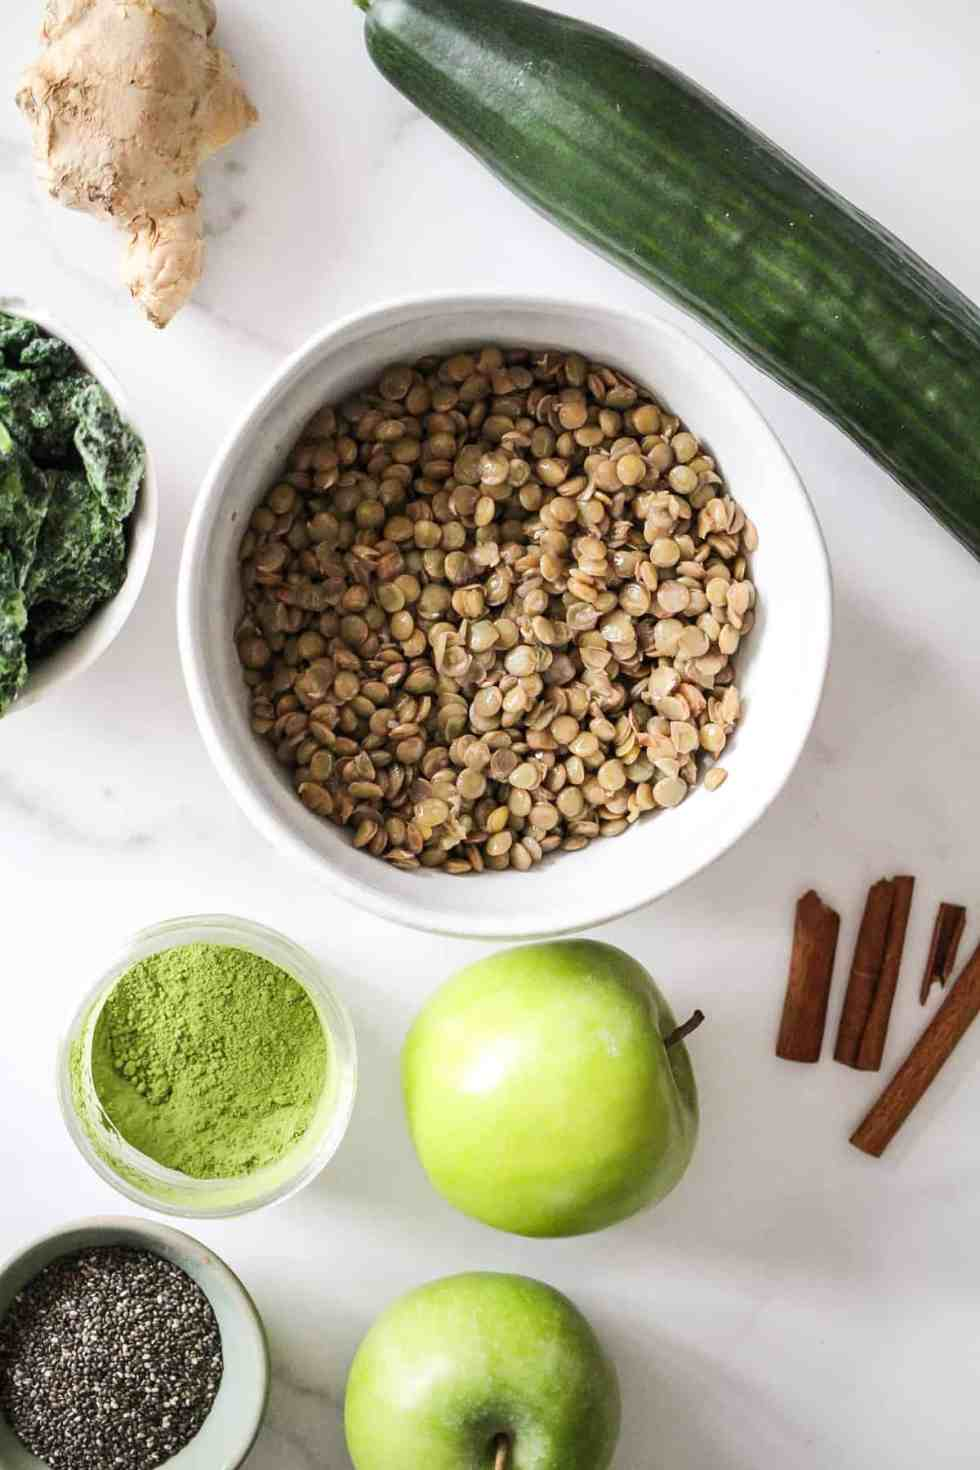 Flatlay image of lentil smoothie ingredients, including cooked lentils, apples, cucumber, cinnamon, ginger, matcha, and chia seeds.